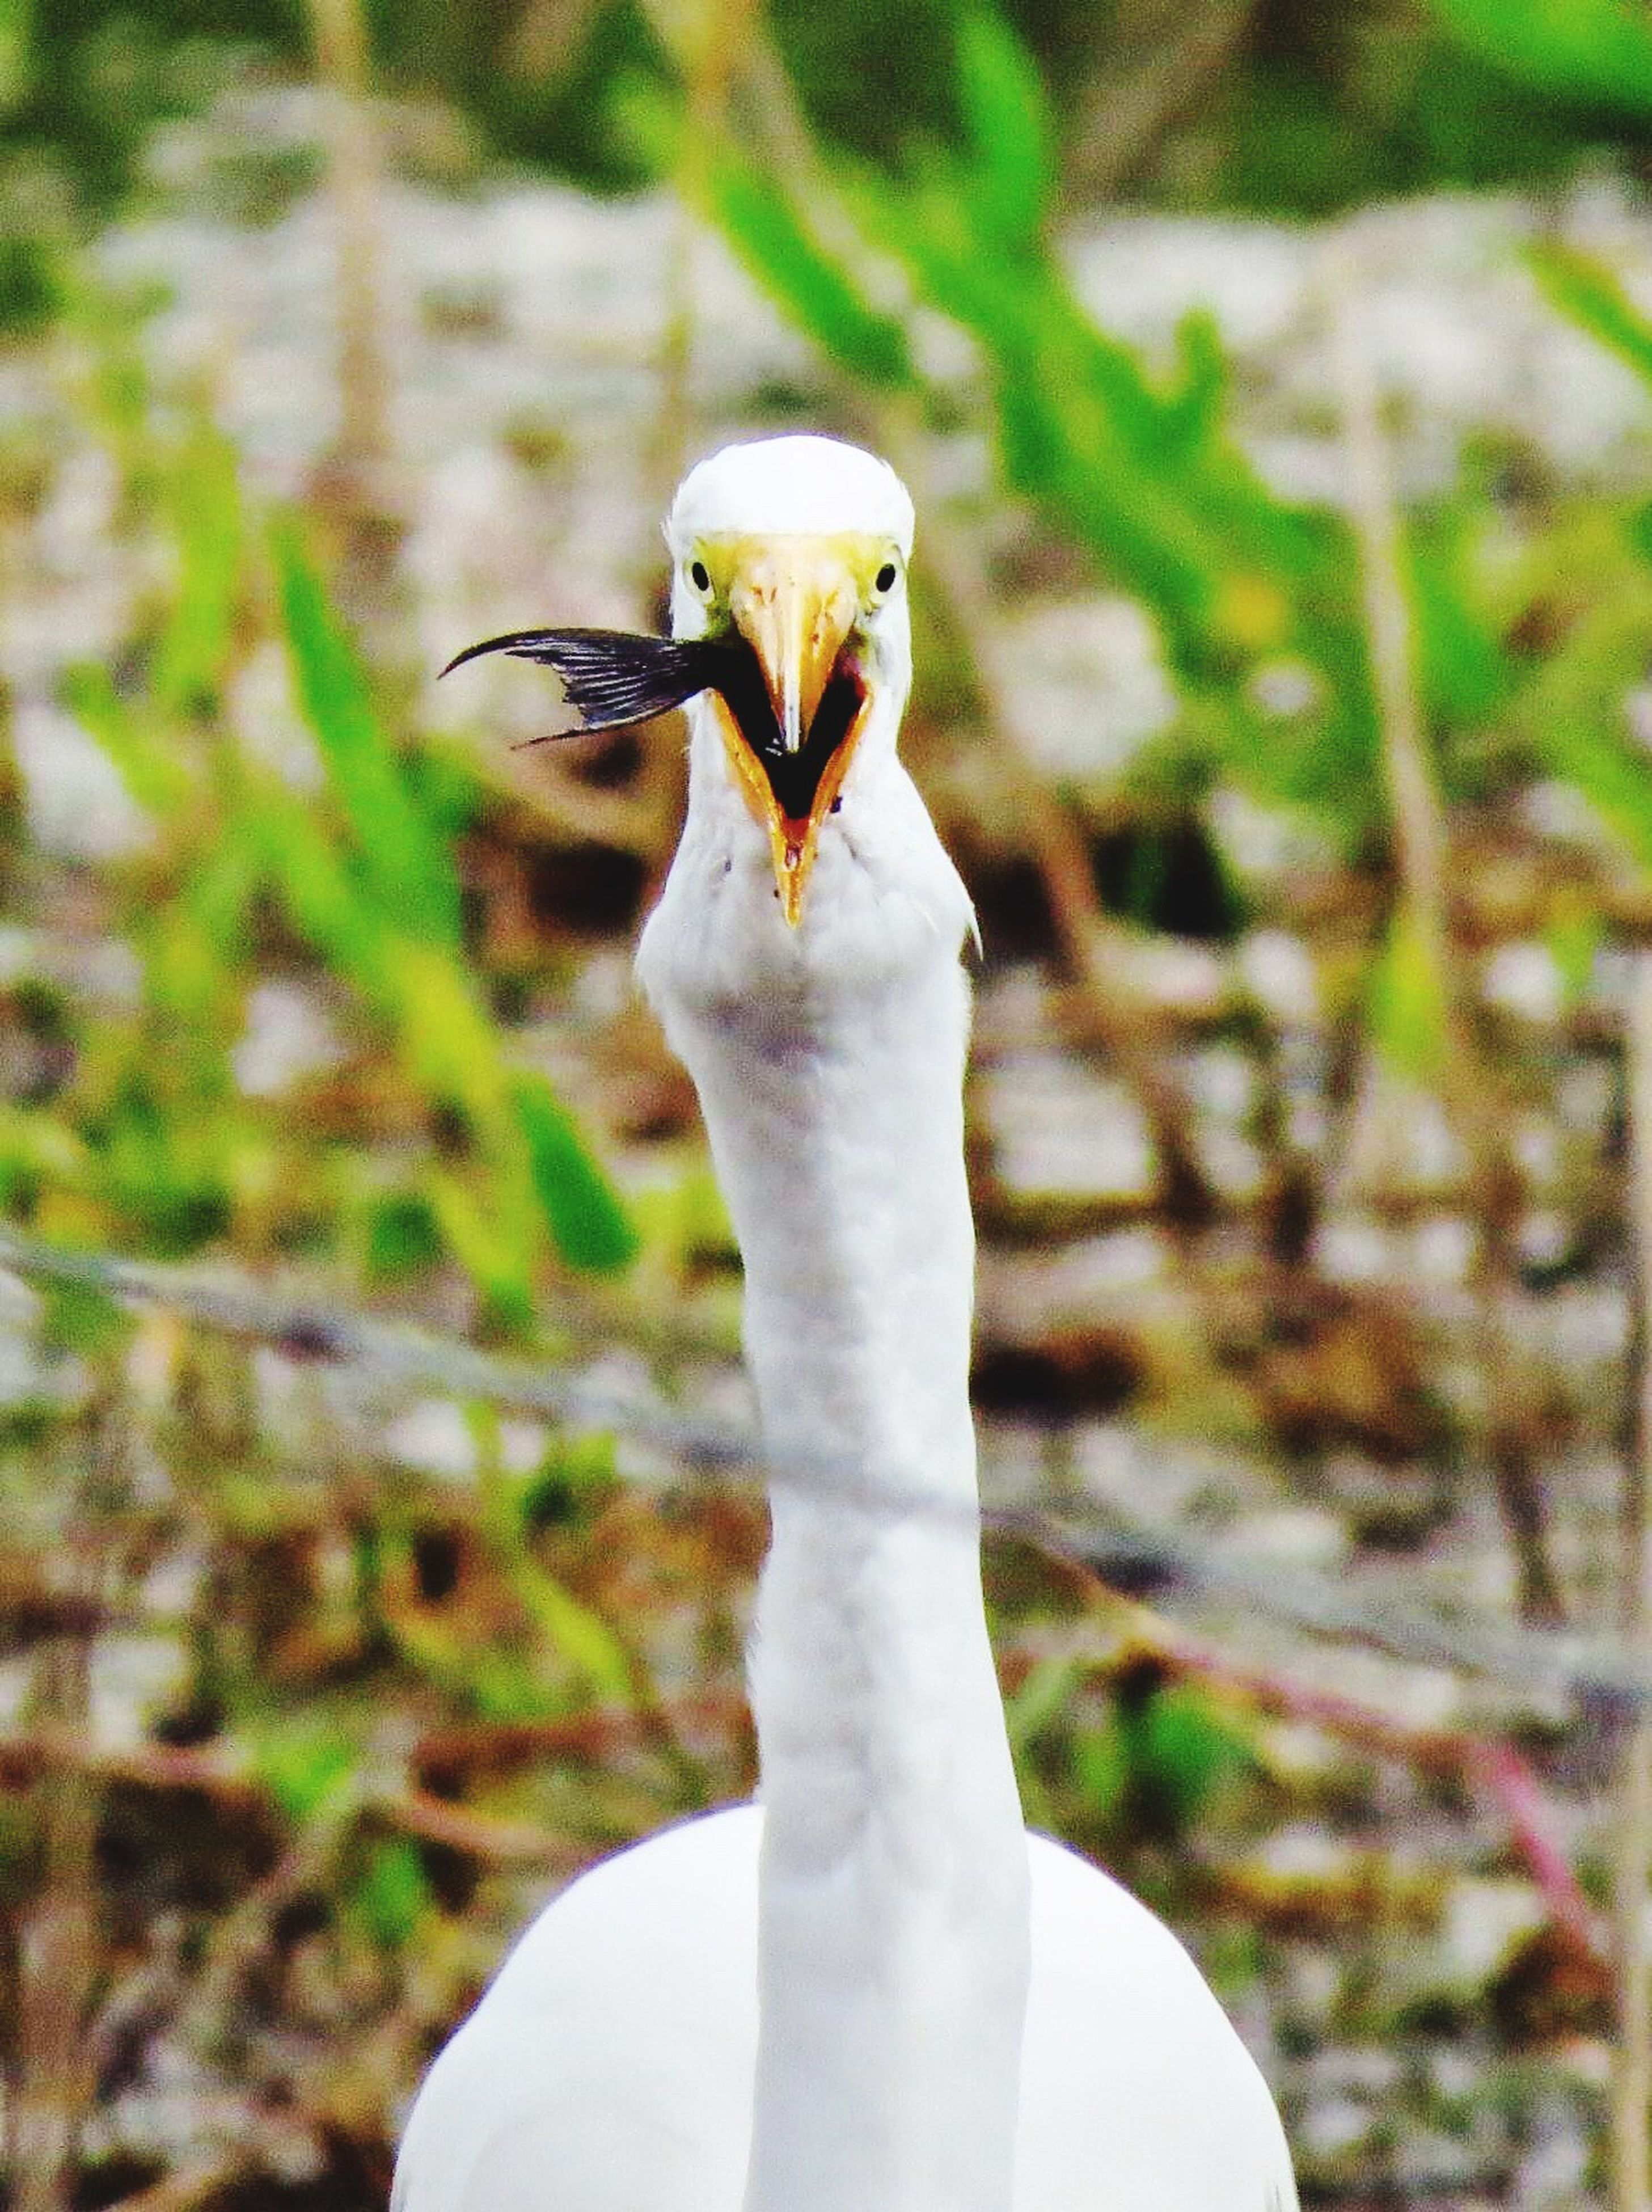 animal themes, one animal, bird, animals in the wild, wildlife, focus on foreground, close-up, beak, white color, animal head, looking away, outdoors, nature, portrait, day, zoology, front view, animal body part, part of